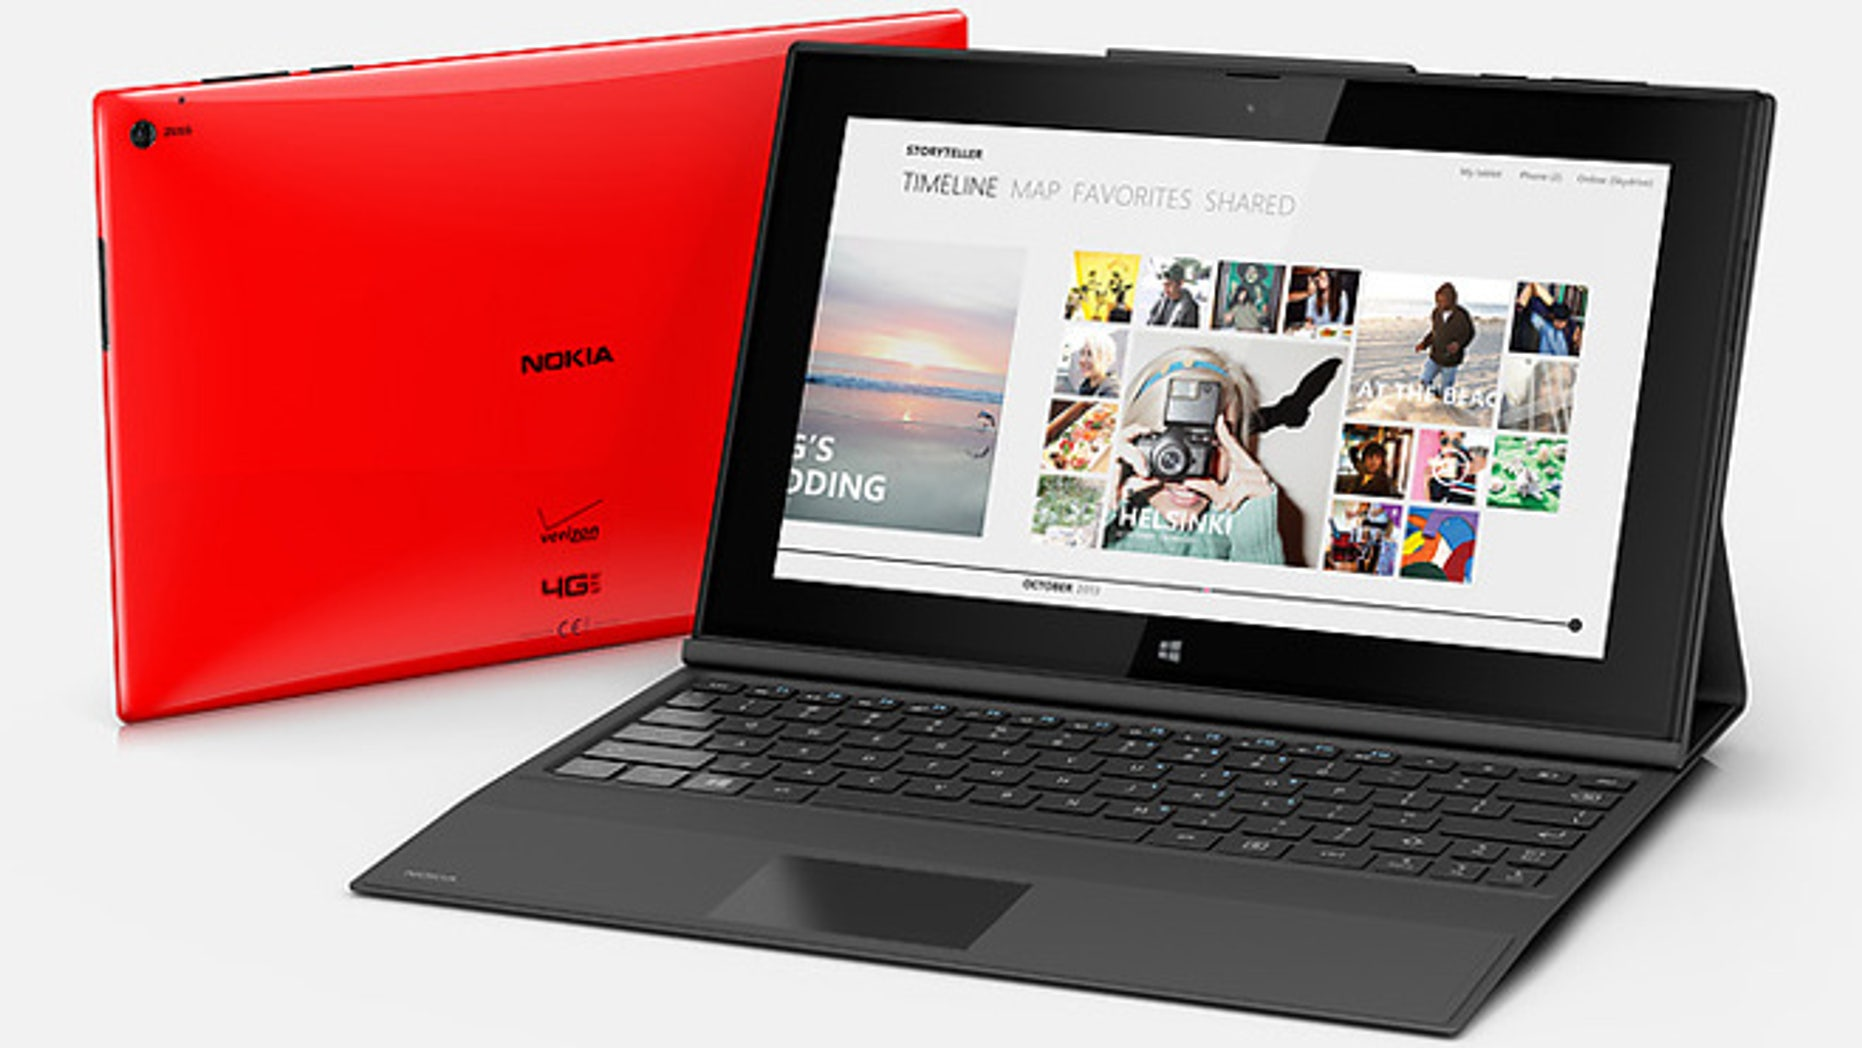 The new Nokia Lumia 2520. All versions of the 2520 will come with built-in 4G LTE cellular access. By contrast, iPads and most other tablets make cellular access optional, with their cheapest models capable of using Wi-Fi only for Internet access.